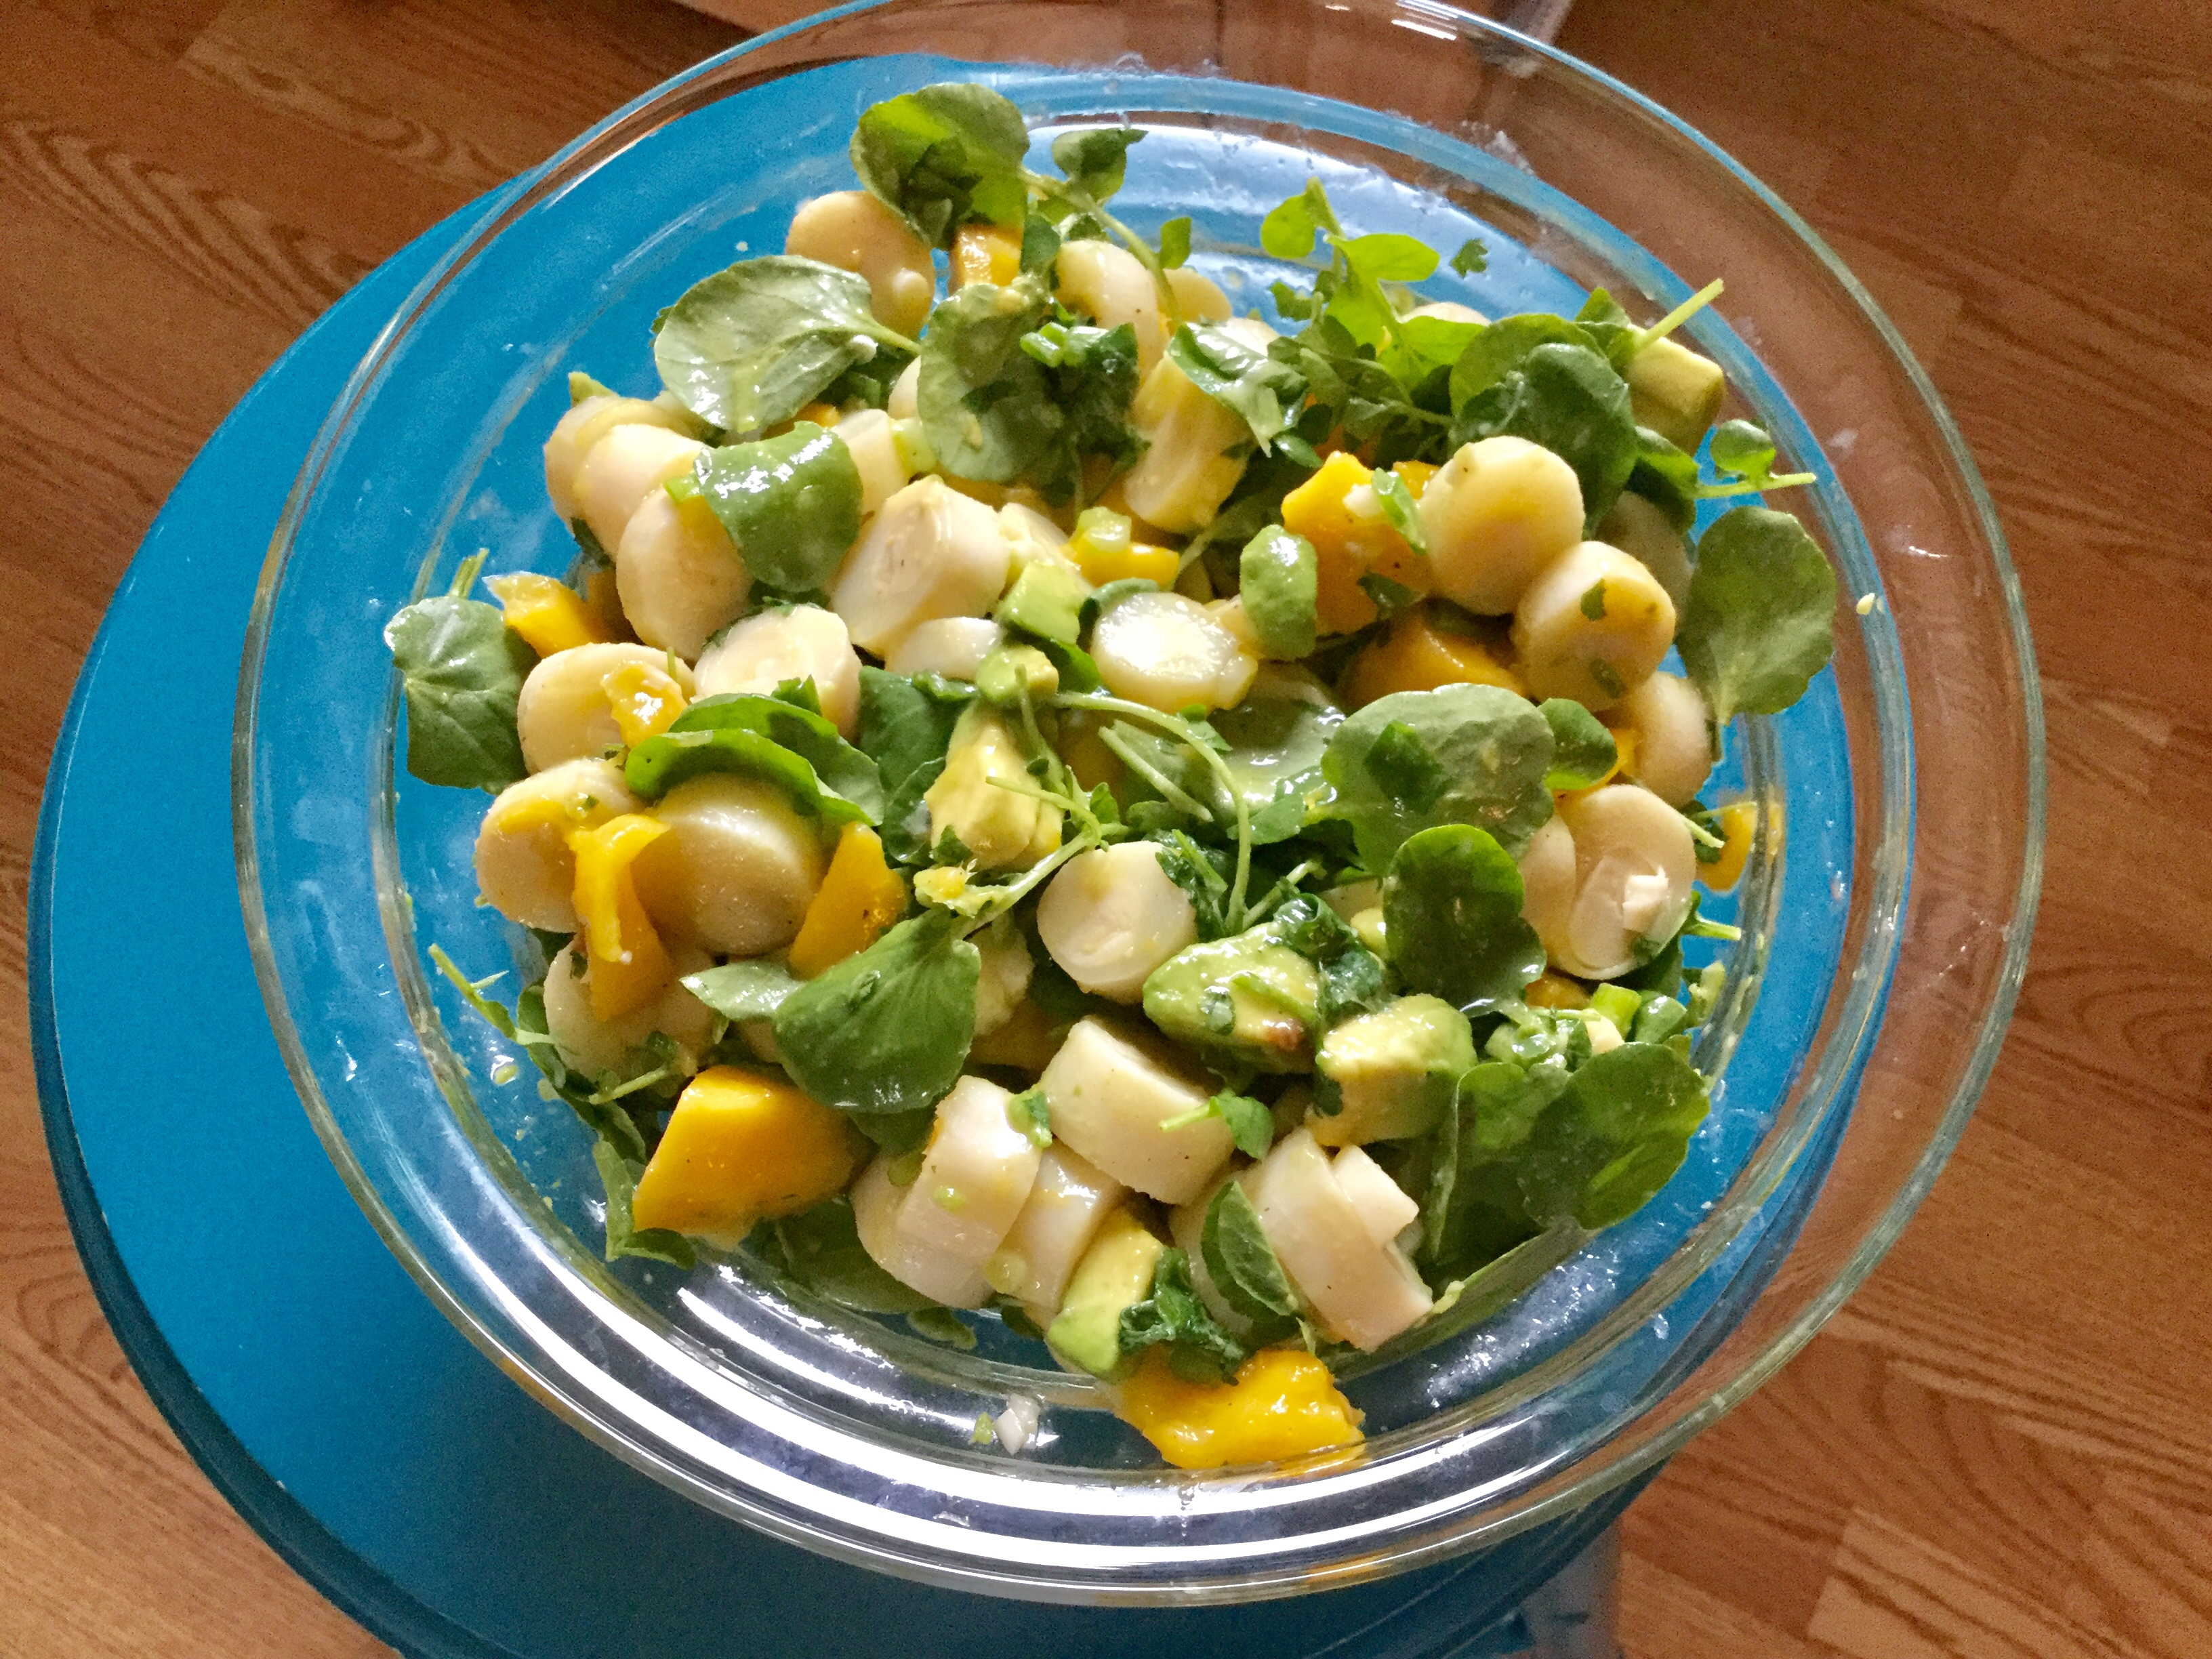 Tropical Hearts of Palm Salad with Mango and Avocado